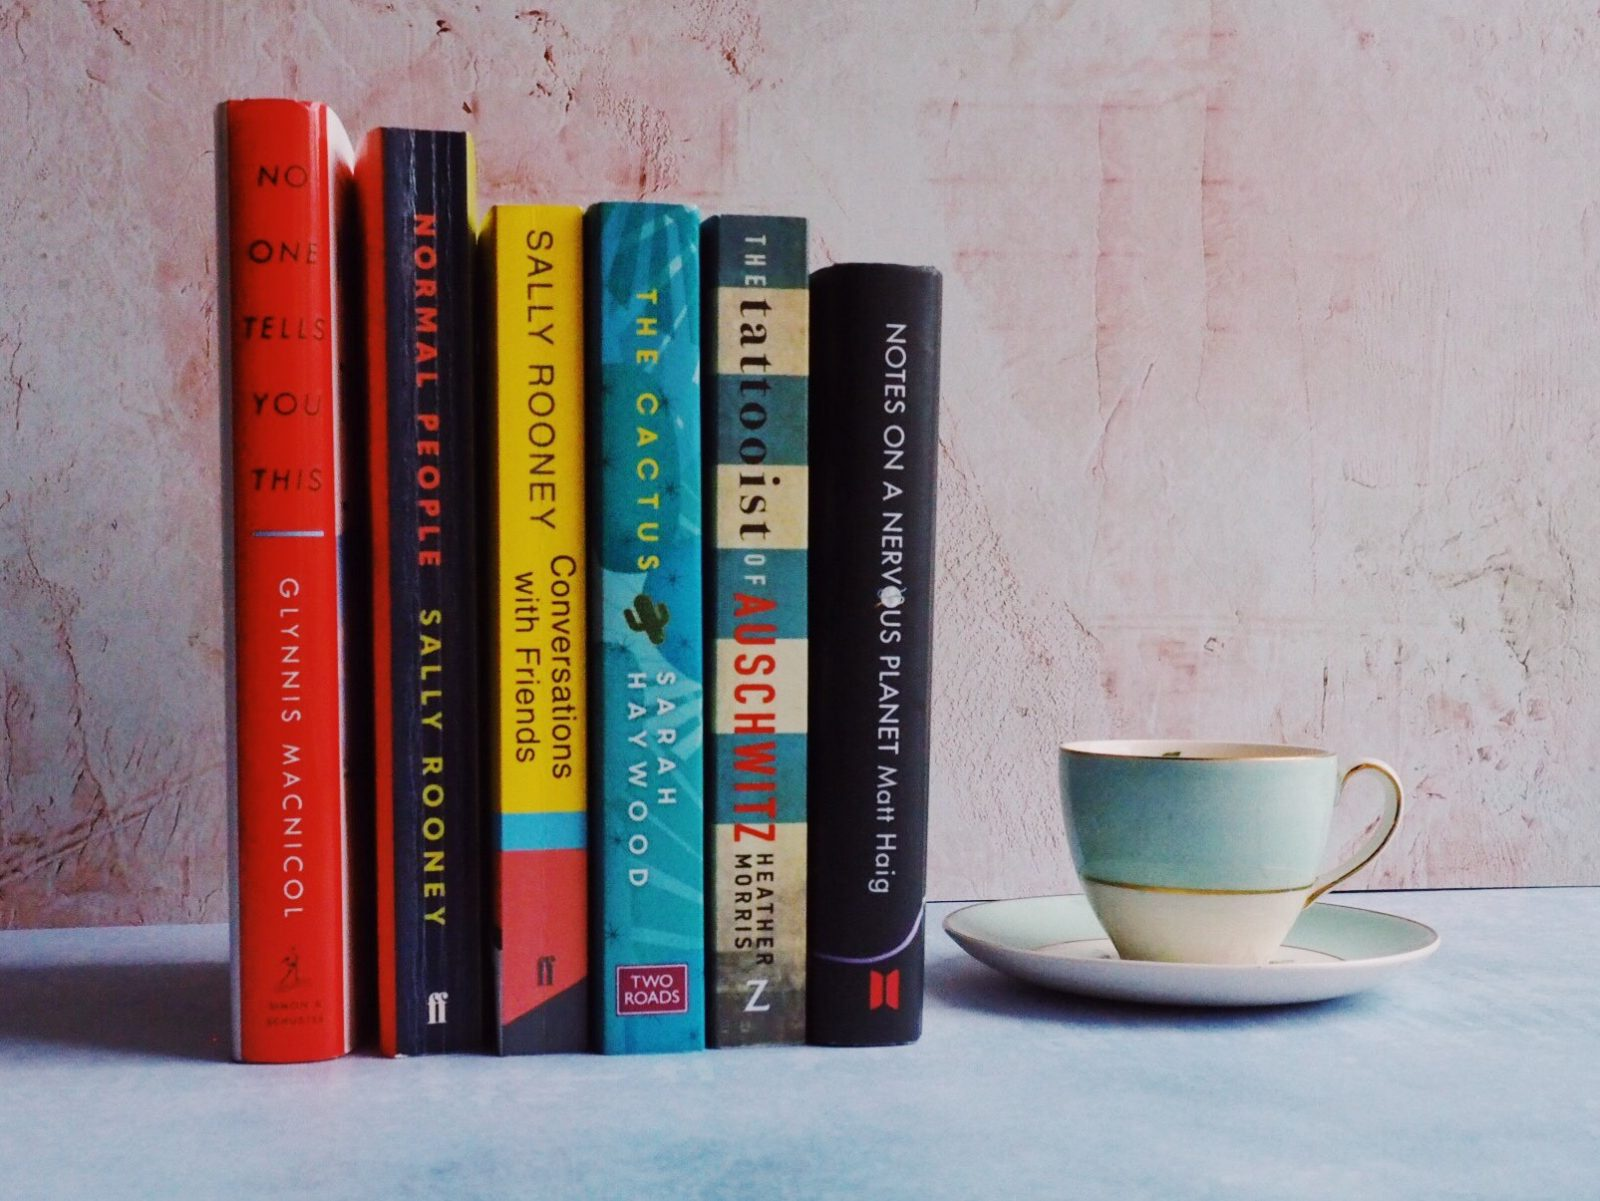 6 great books for reading.